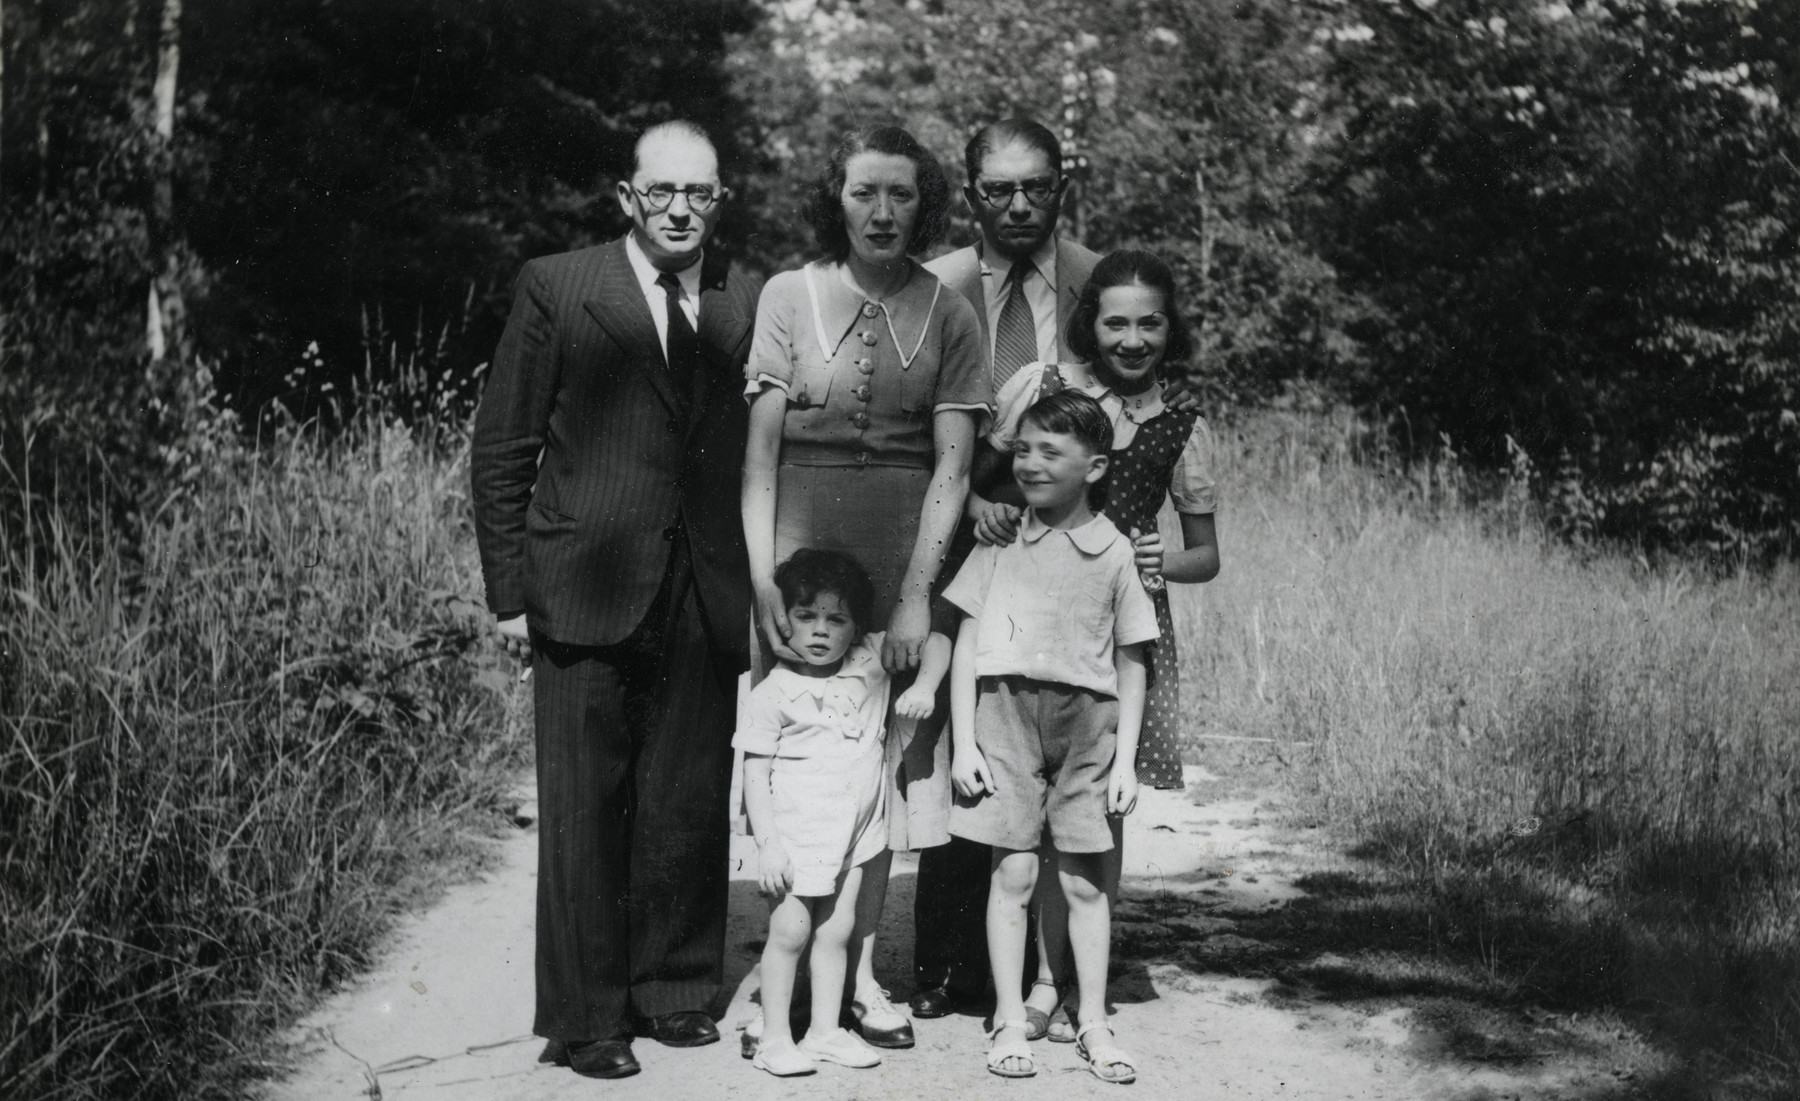 The Spira family visits Taverny shortly after the German invasion.  From left to right are Eduard, Camille and Joseph (Eduard's brother) Spira with Robert, Max and Annie in front of them.